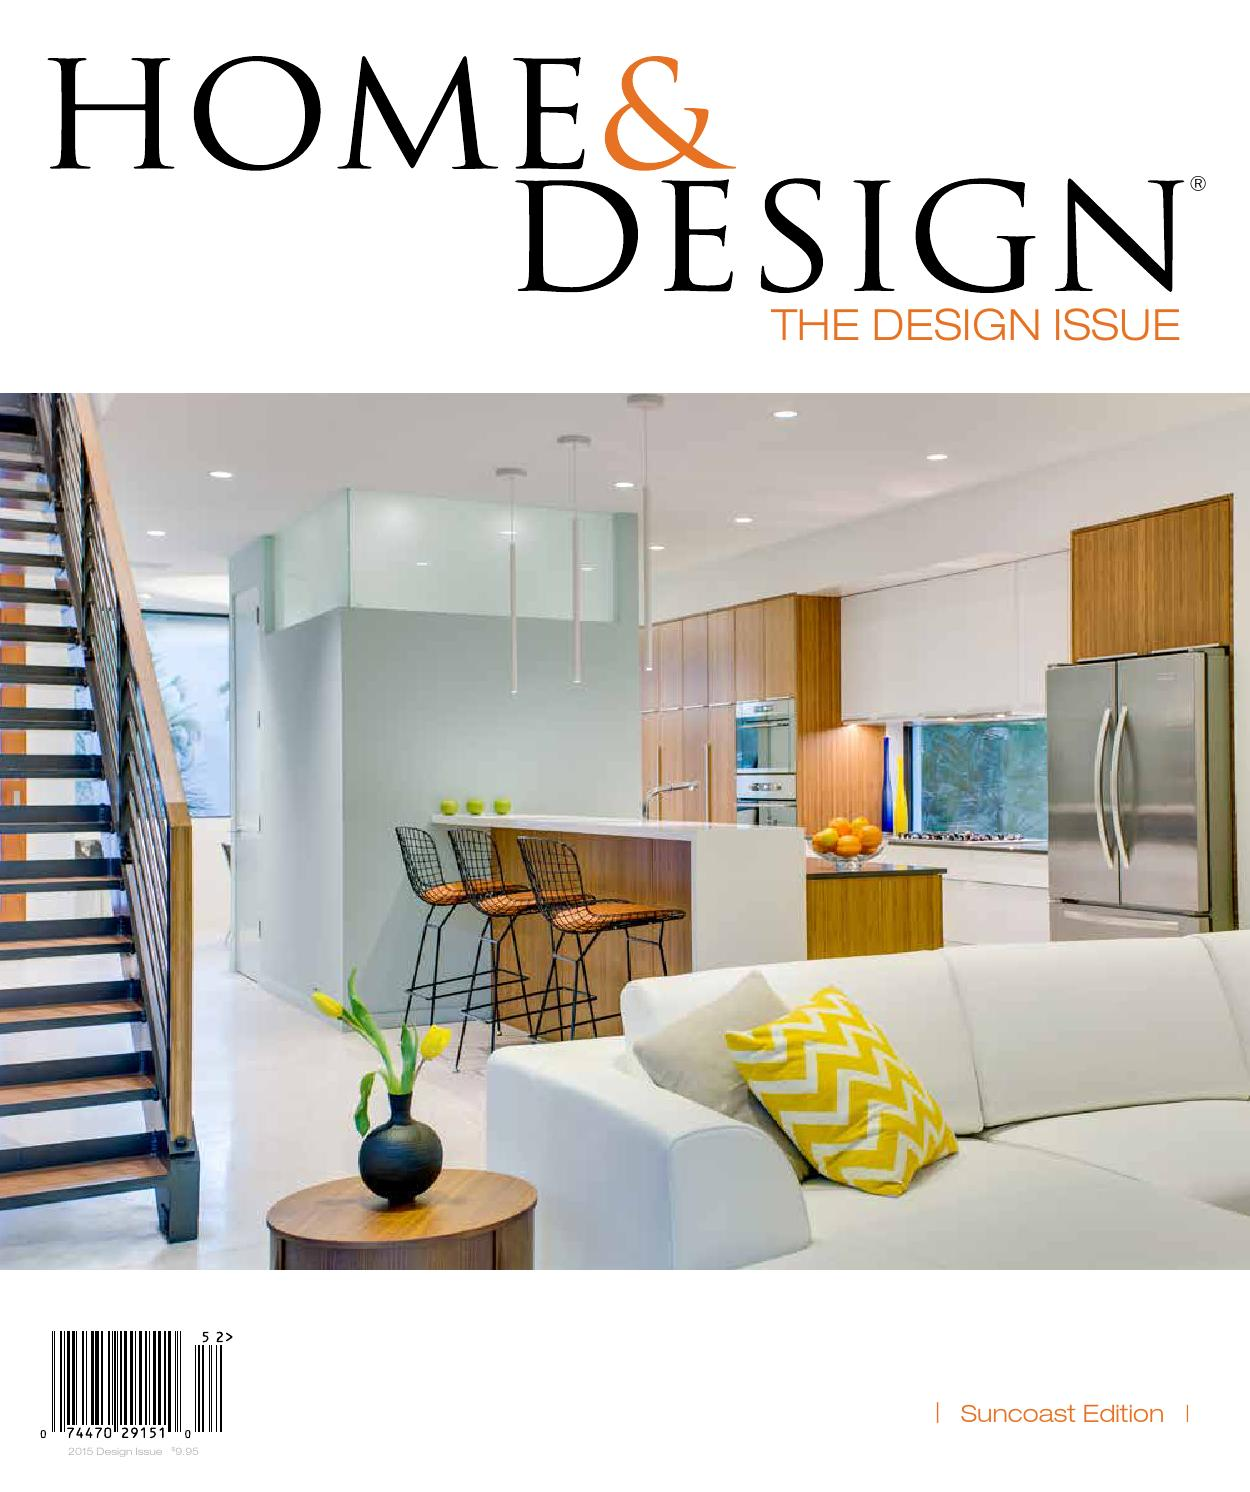 Home Design Magazine Design Issue 2015 Suncoast Florida Edition By Jennifer Evans Issuu